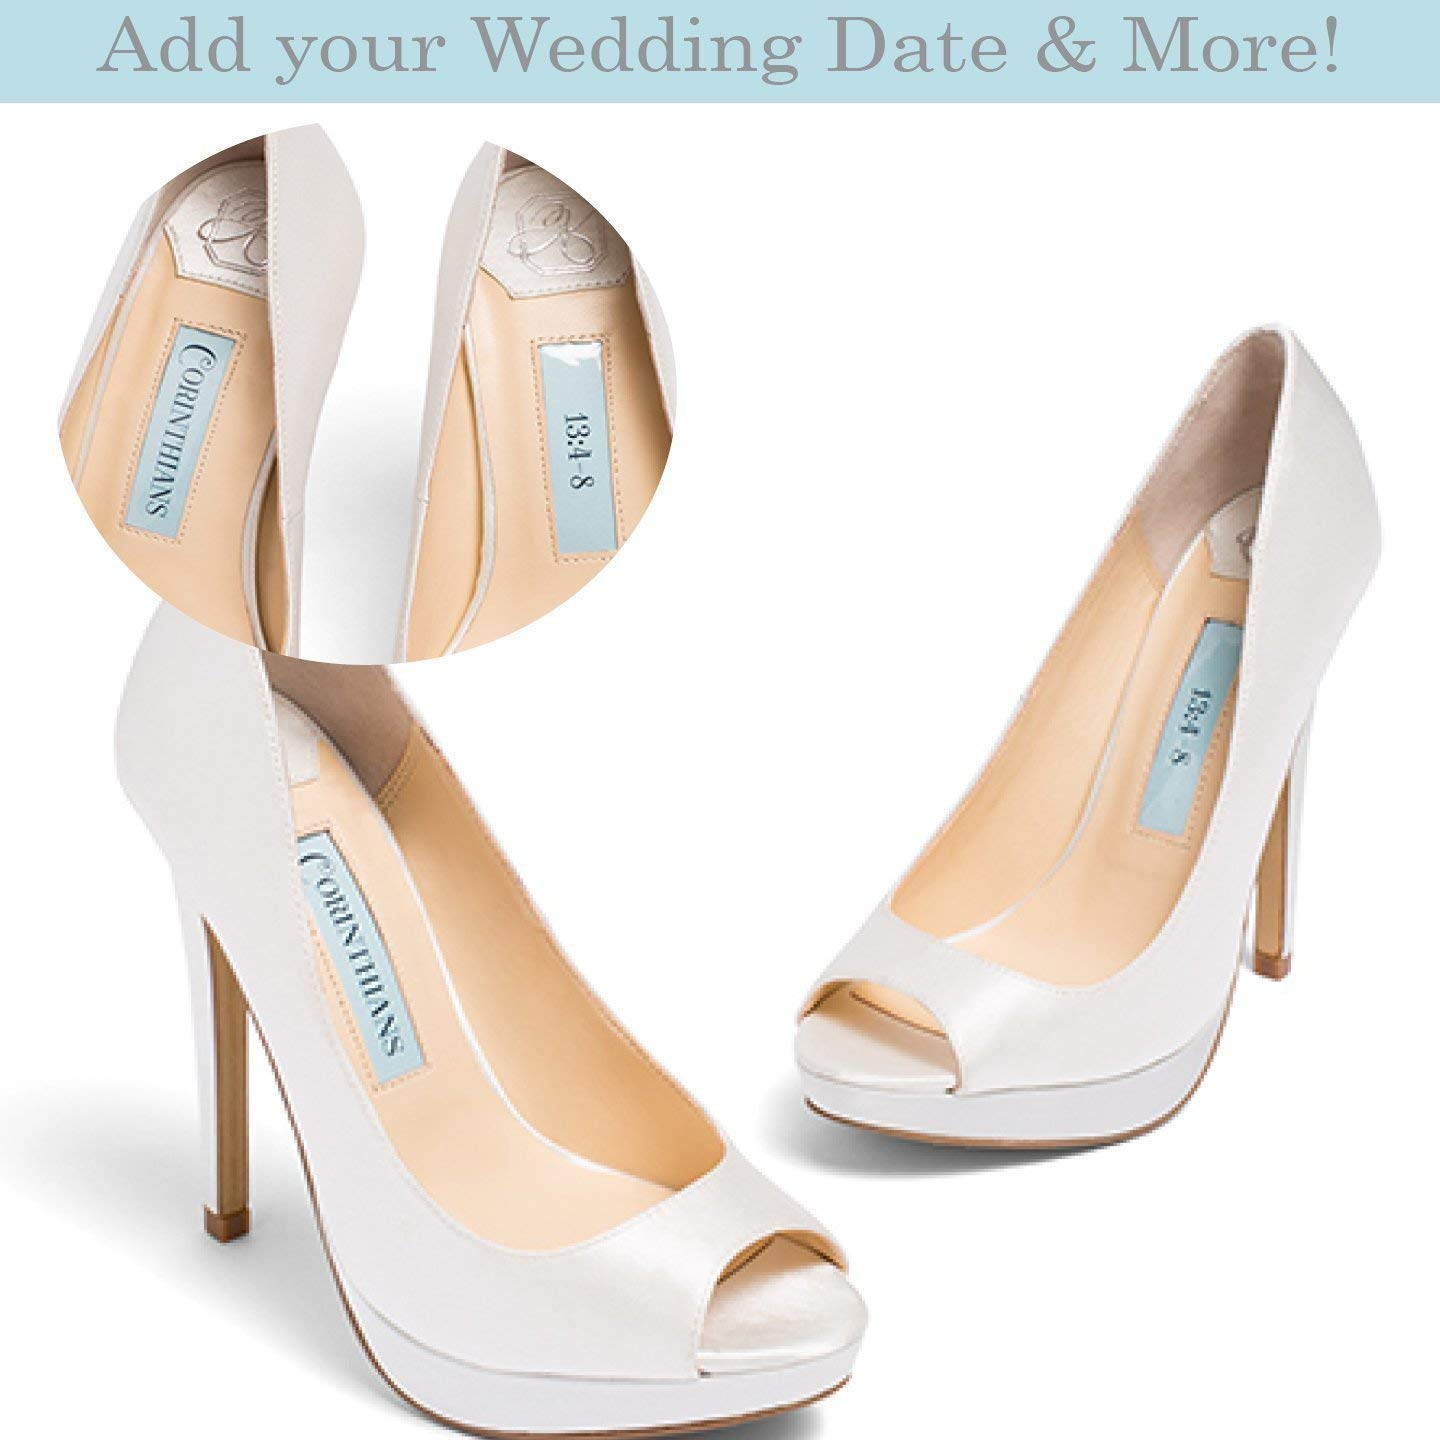 Bridal Womens Ivory Satin Peep Toe Wedding Bridal Shoes - Personalization available patent pending